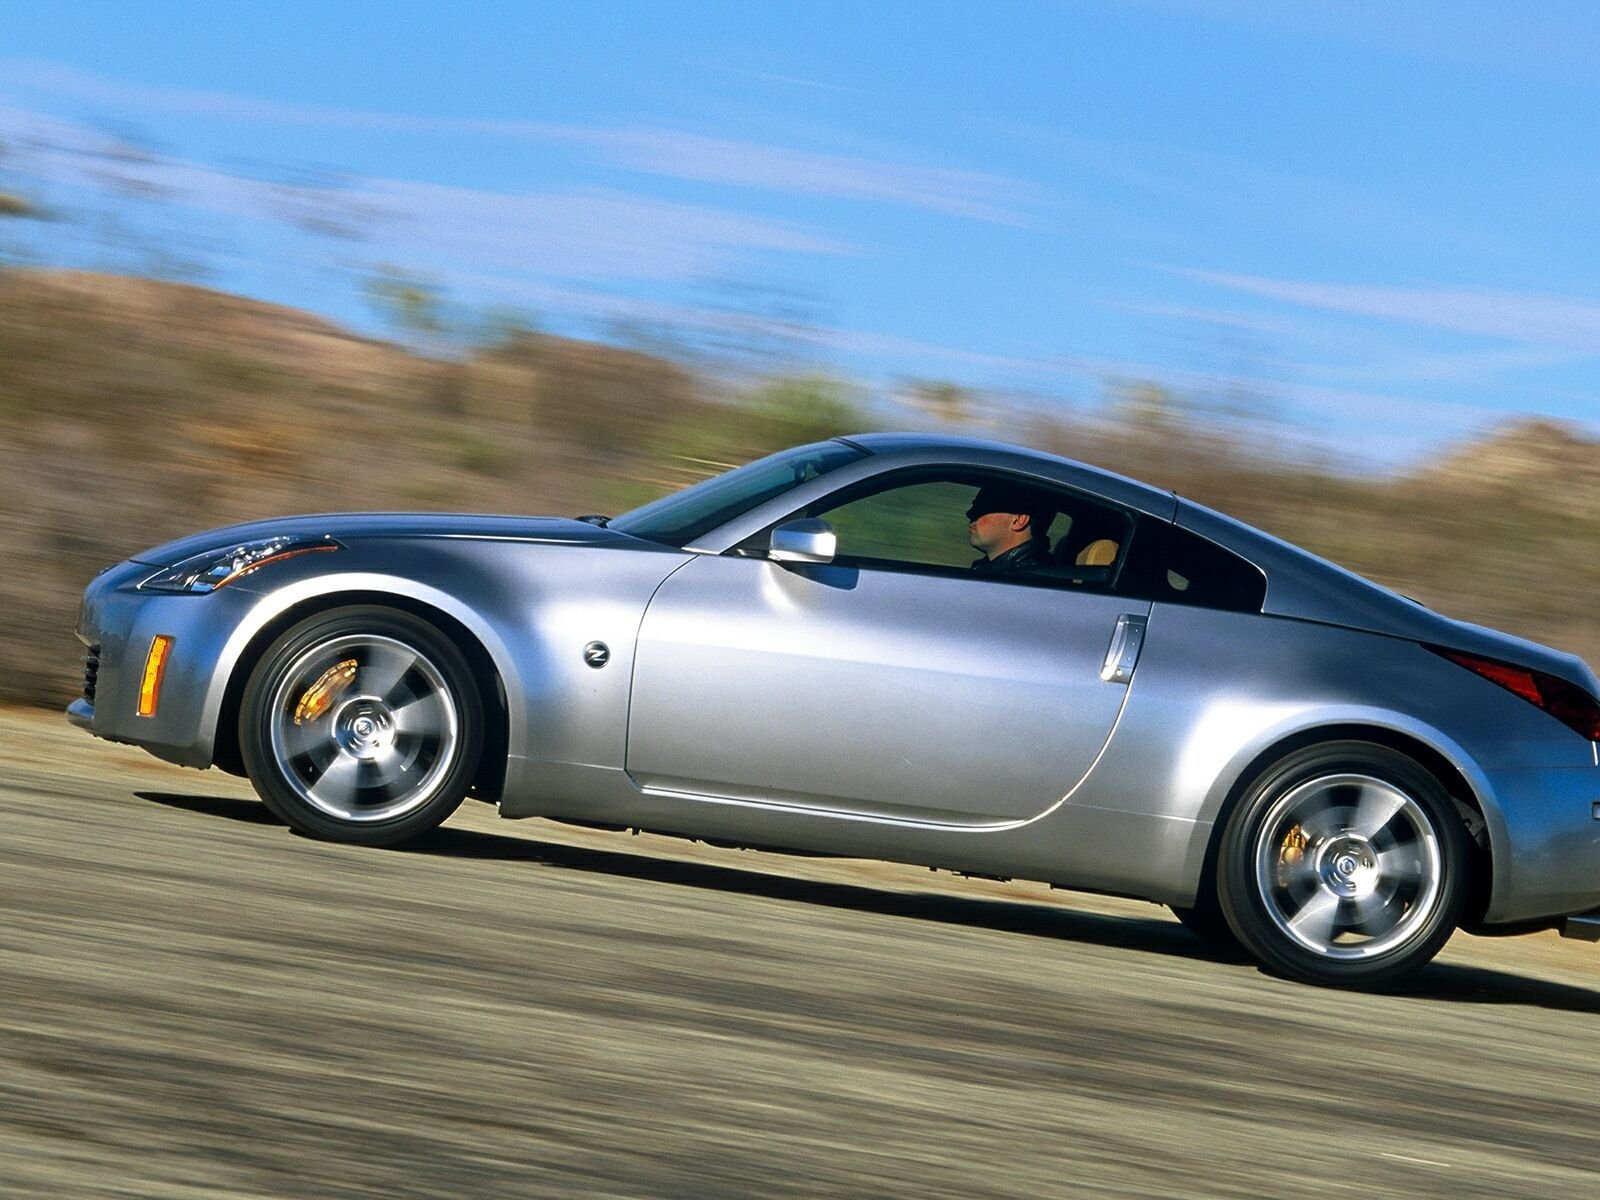 2005 nissan 350z picture 26680 car review top speed. Black Bedroom Furniture Sets. Home Design Ideas